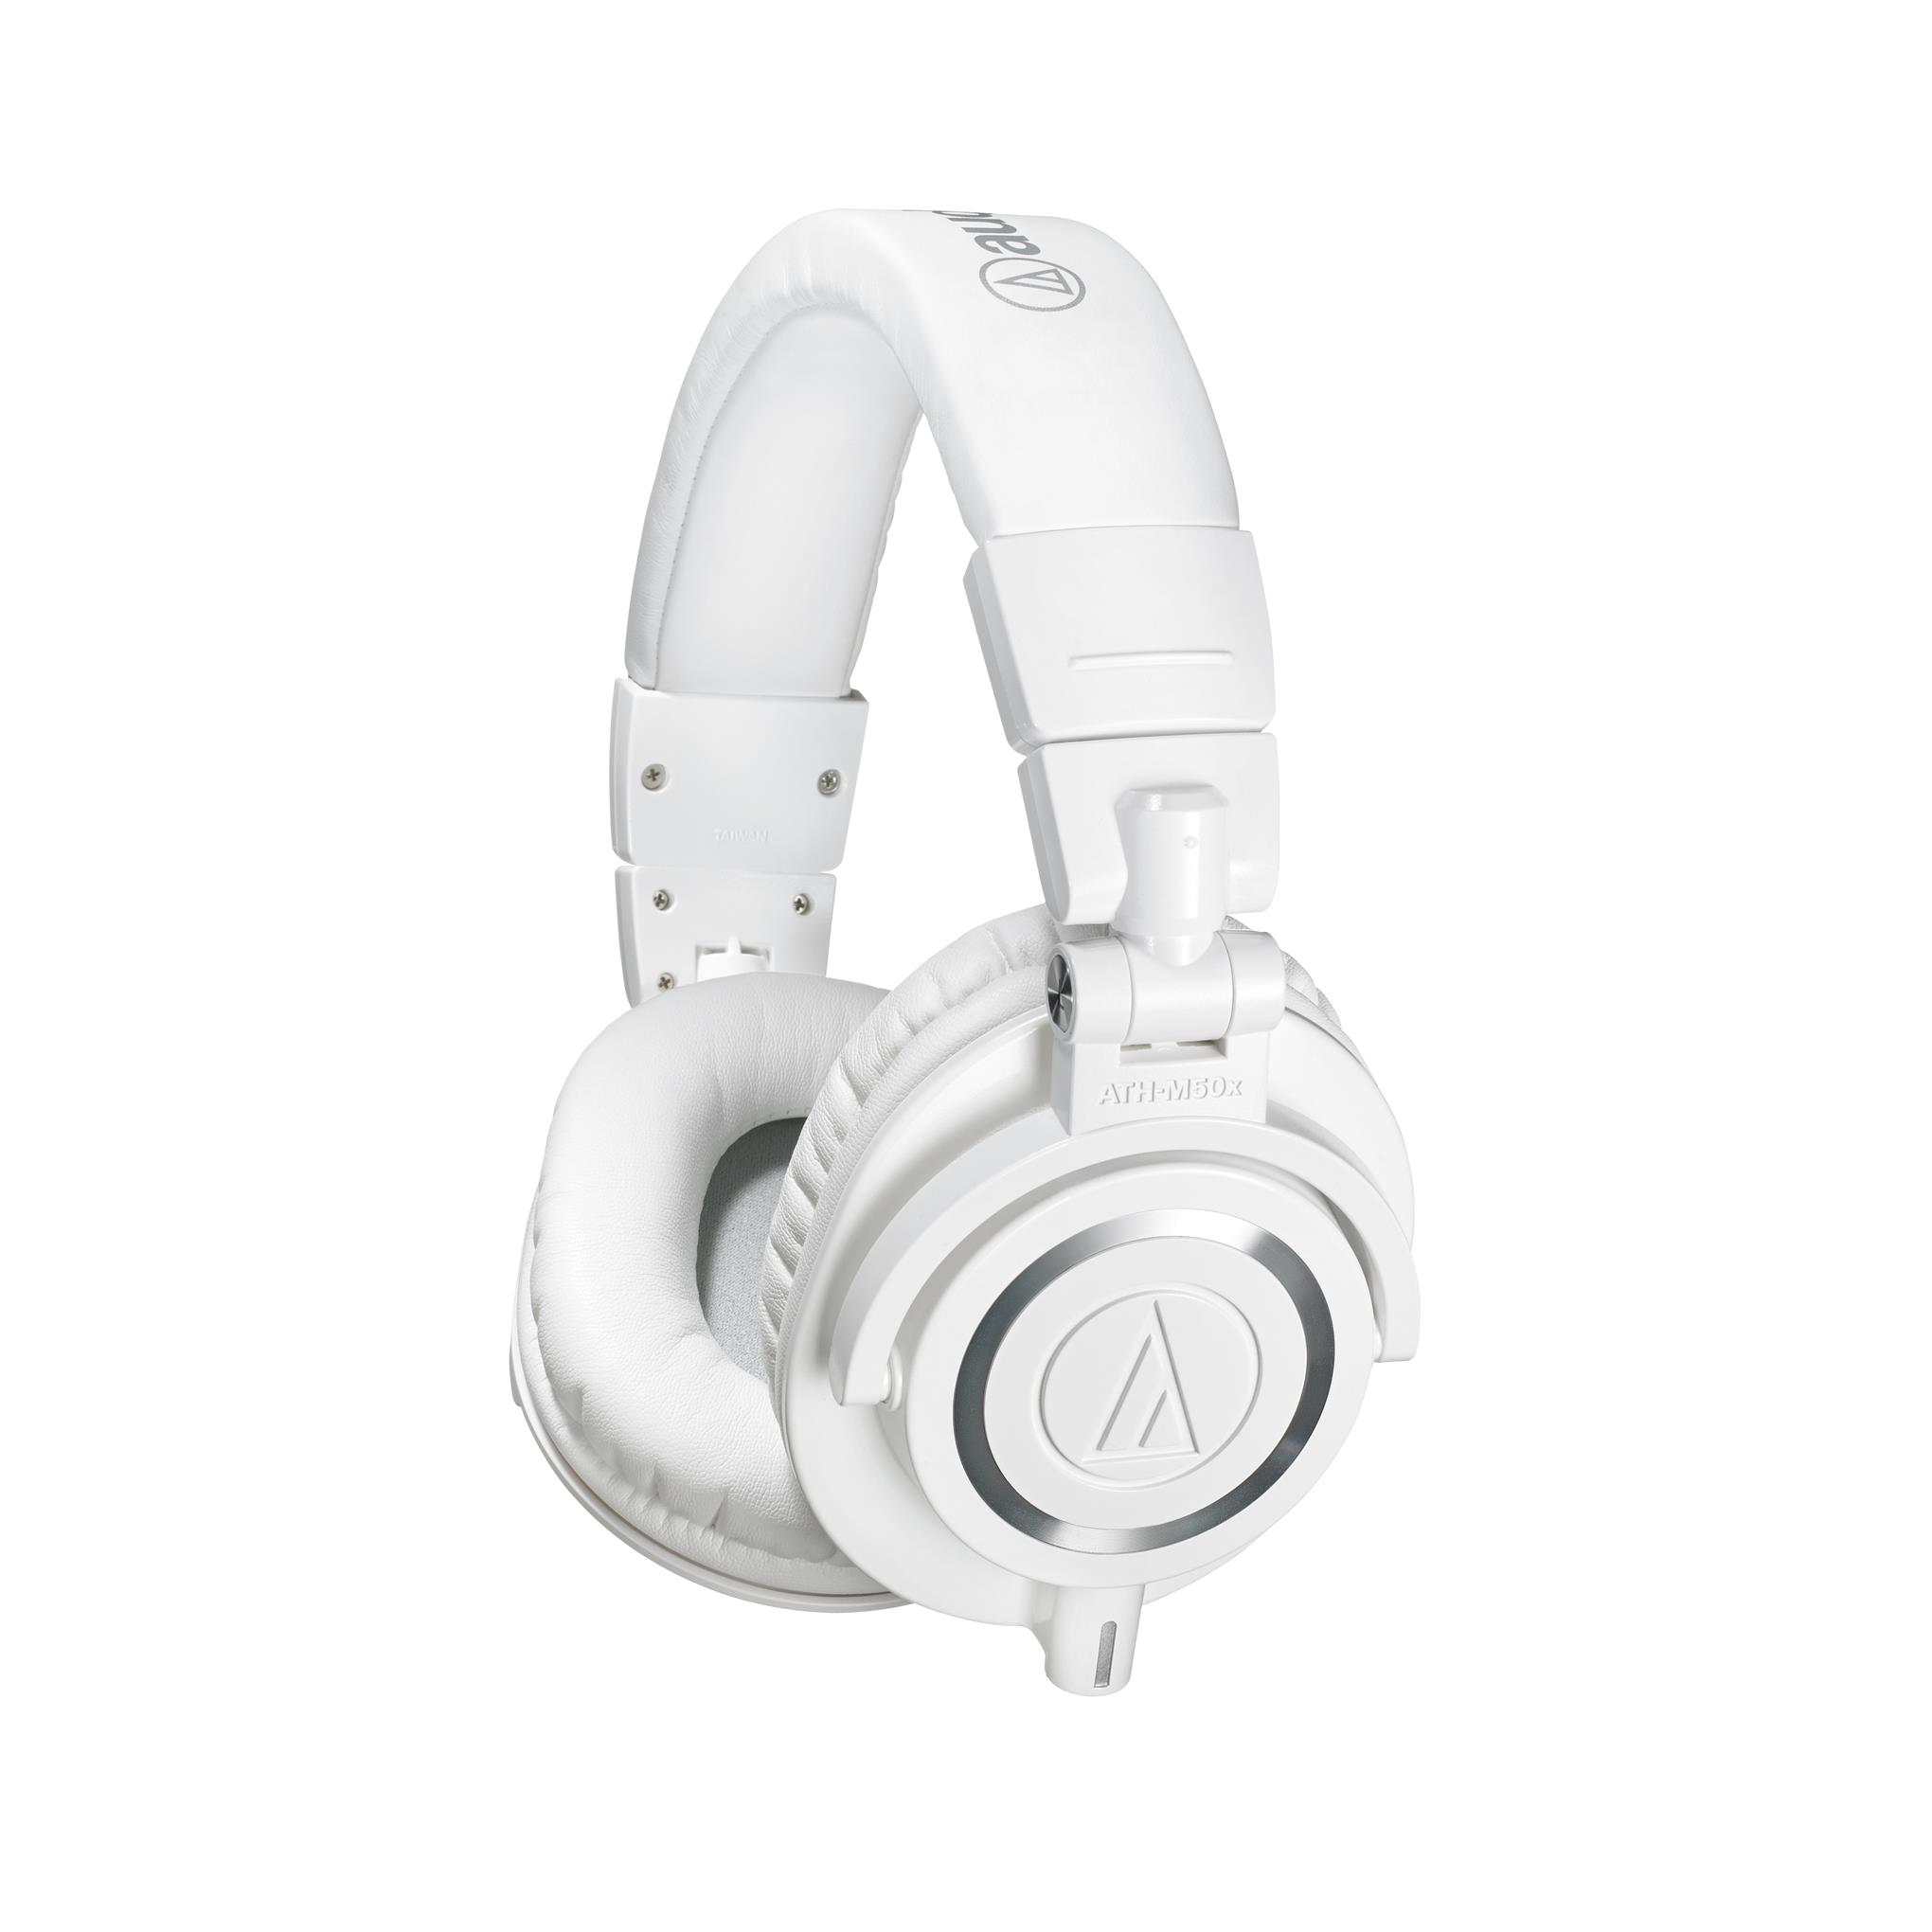 Audio Technica ATH-M50x WH Professional Monitor Headphones